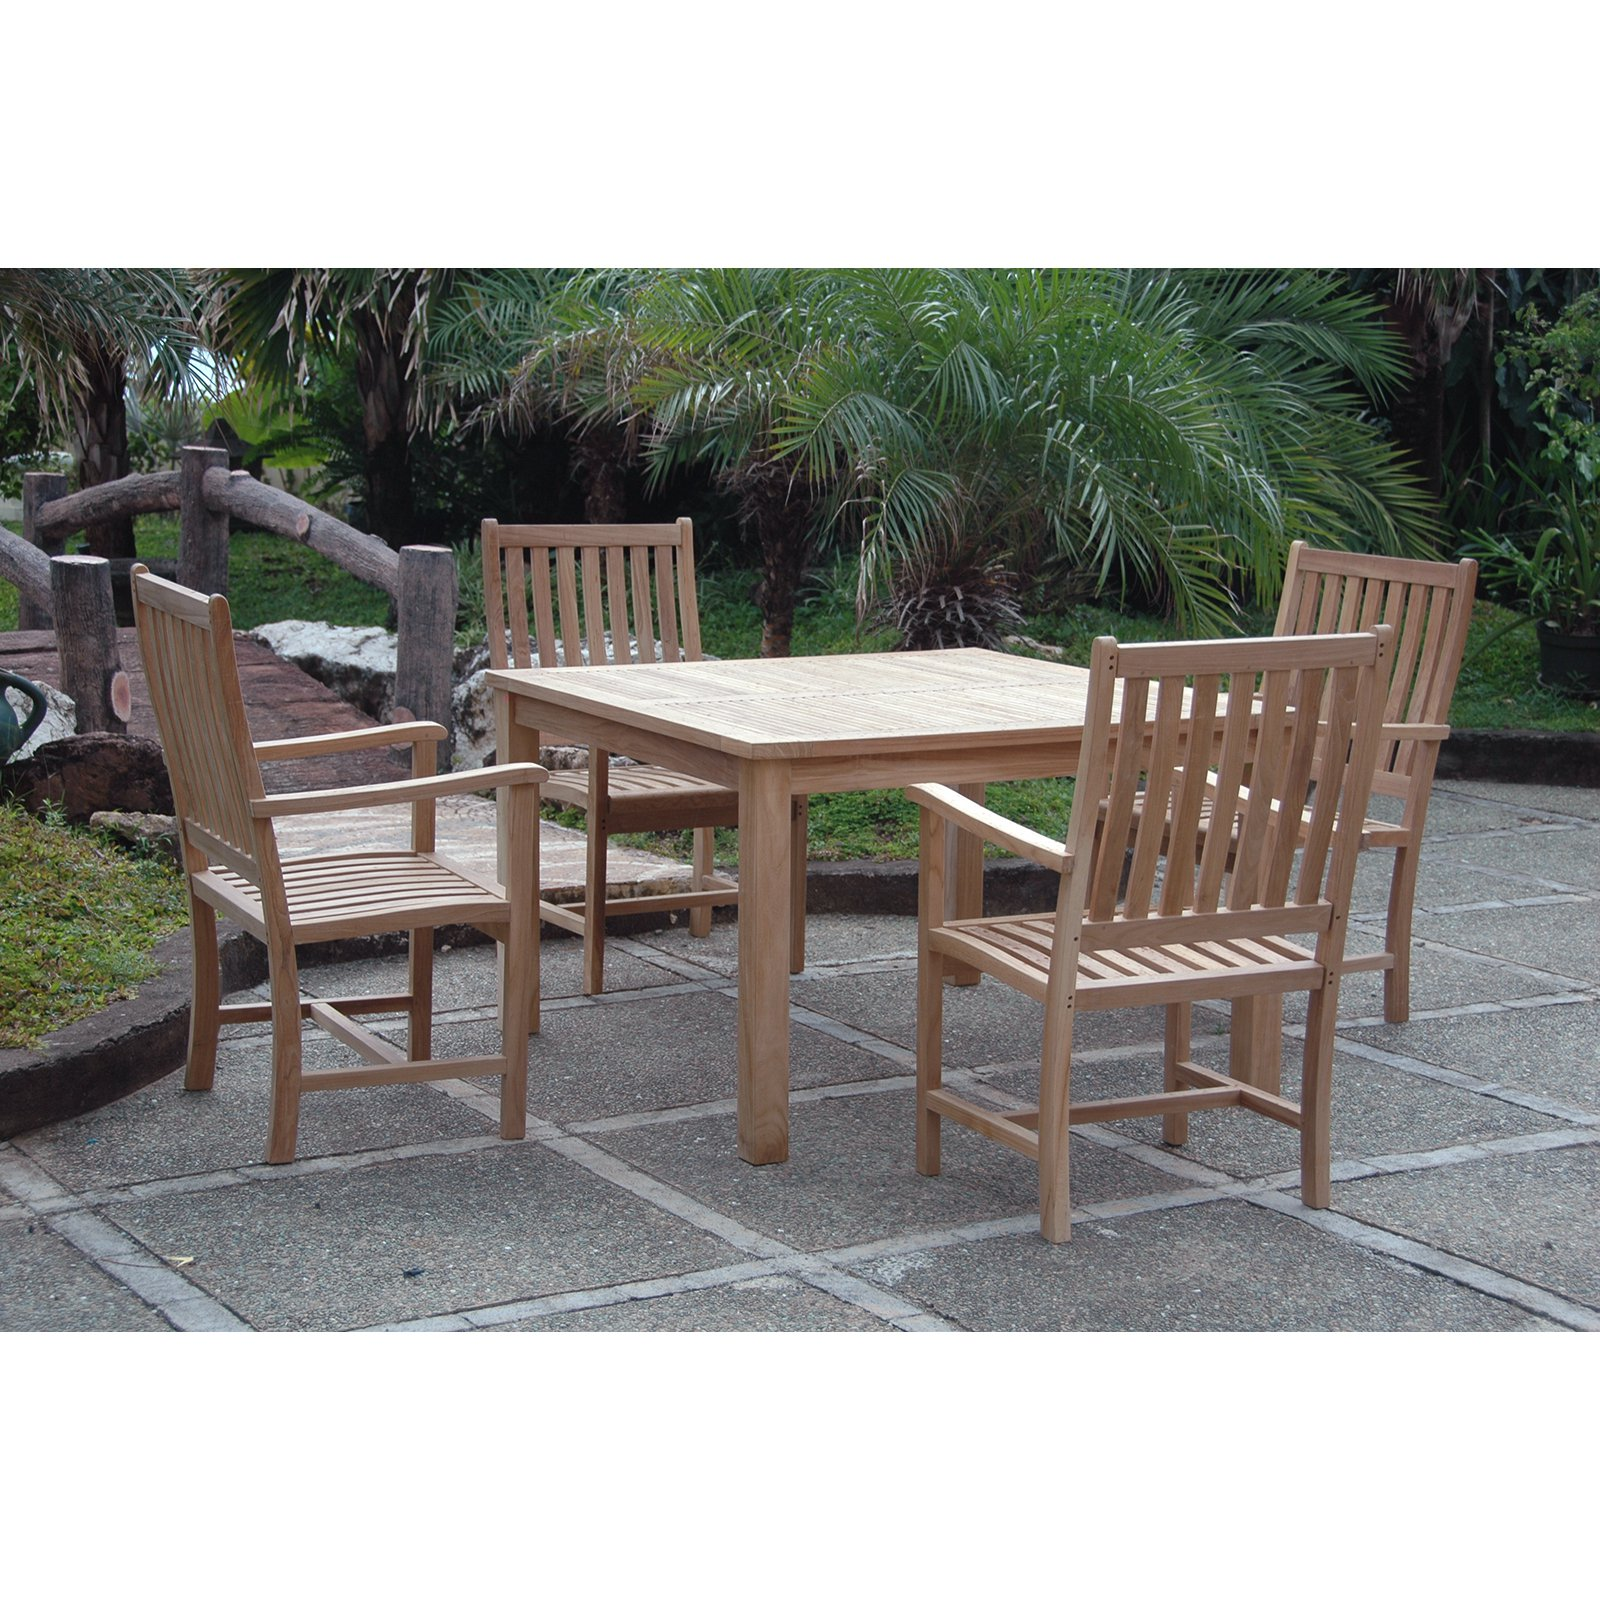 Anderson Teak Windsor 3 Piece Patio Dining Room Set by Anderson